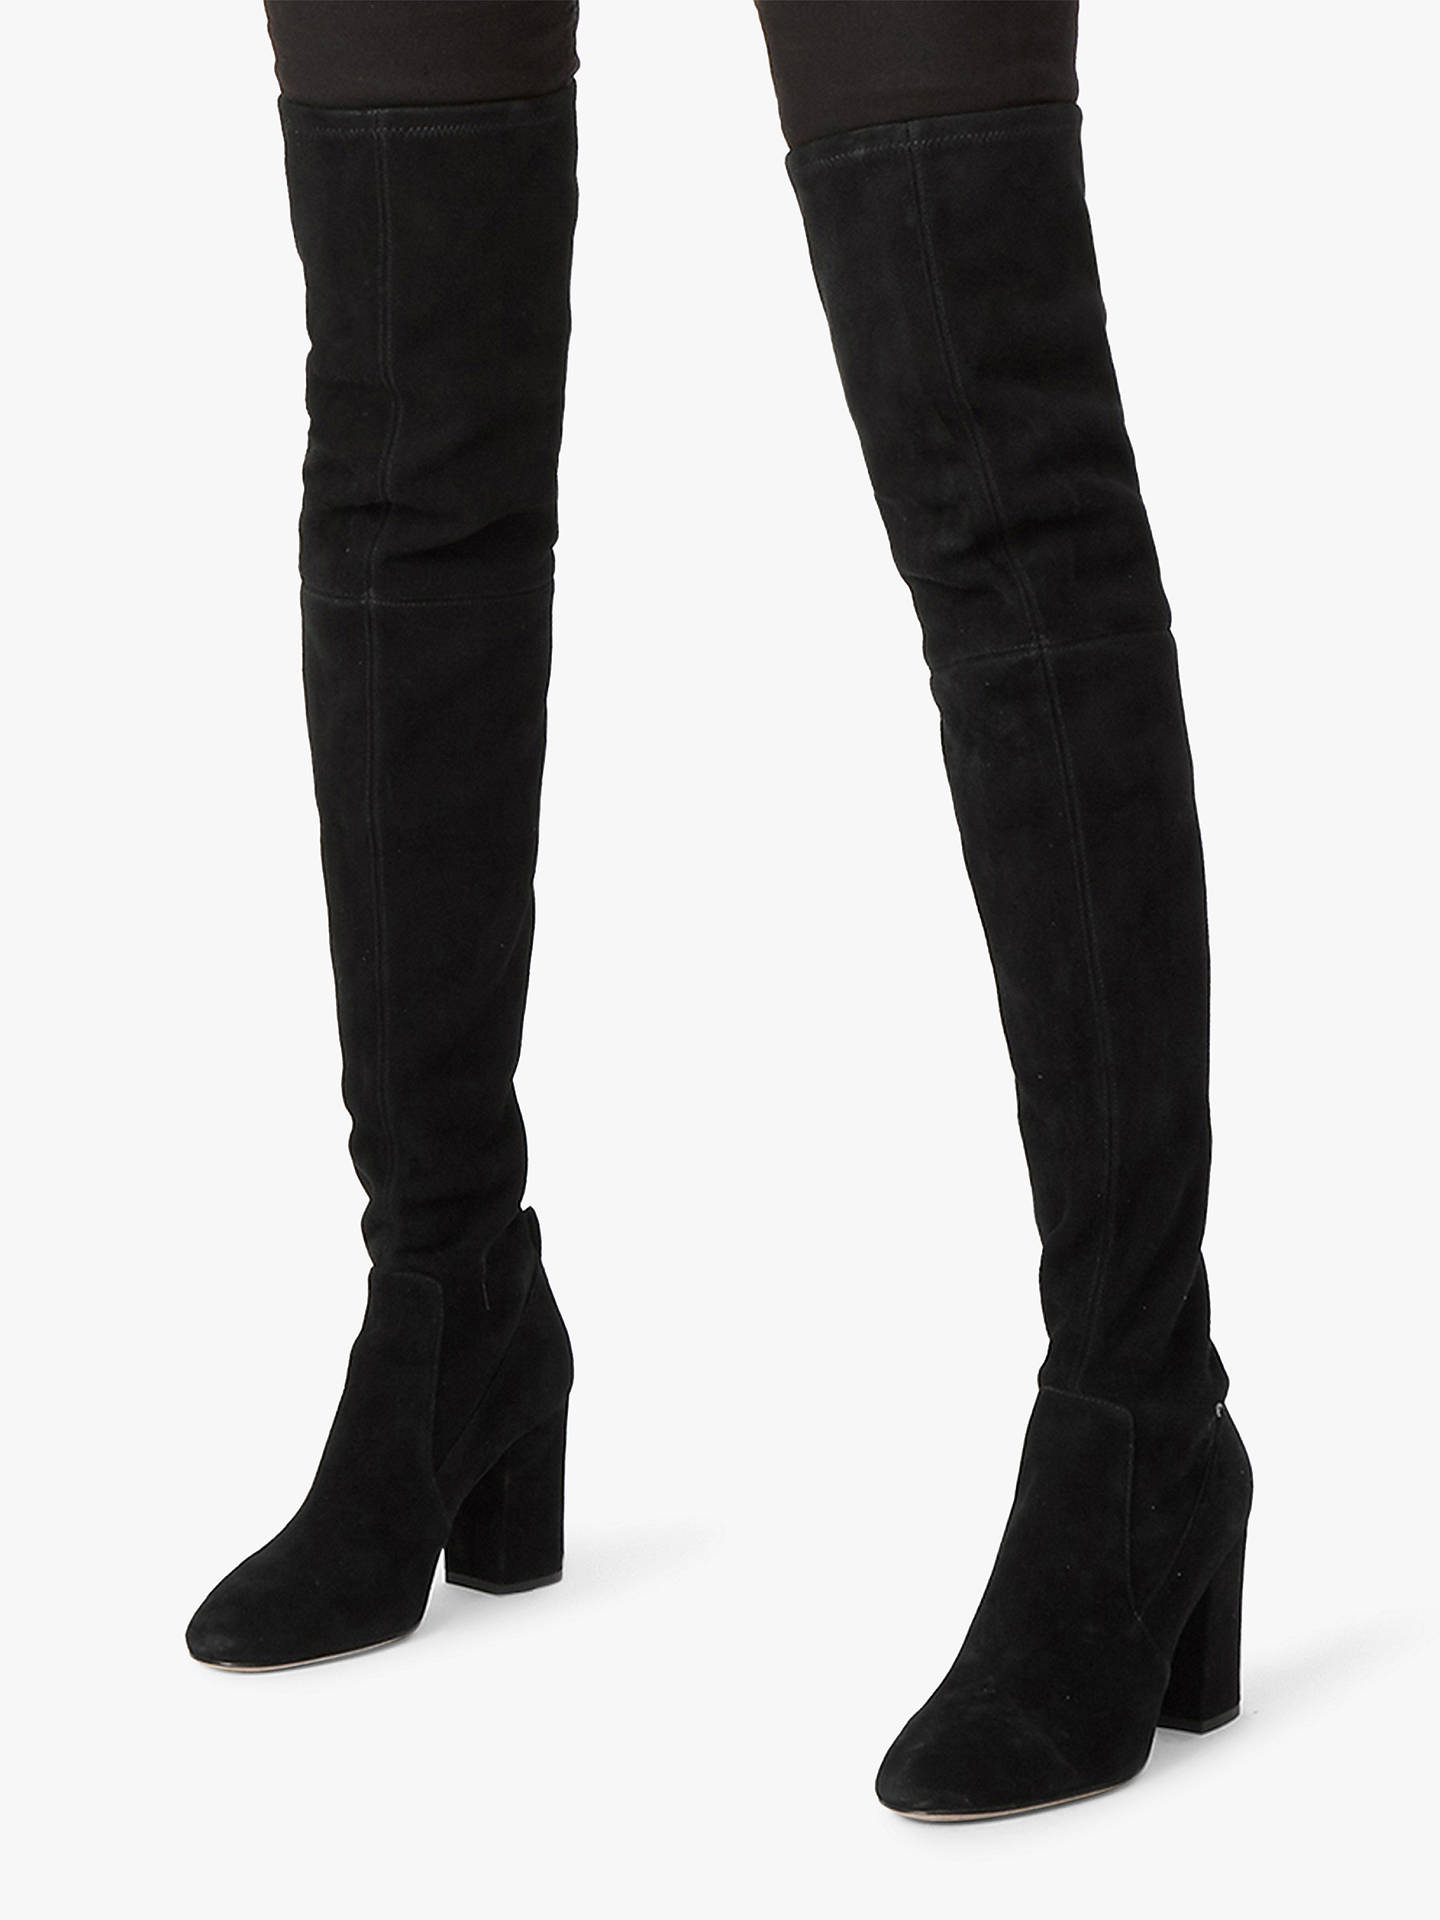 75b9623f049 ... Buy Coach Giselle Over The Knee Block Heel Boots